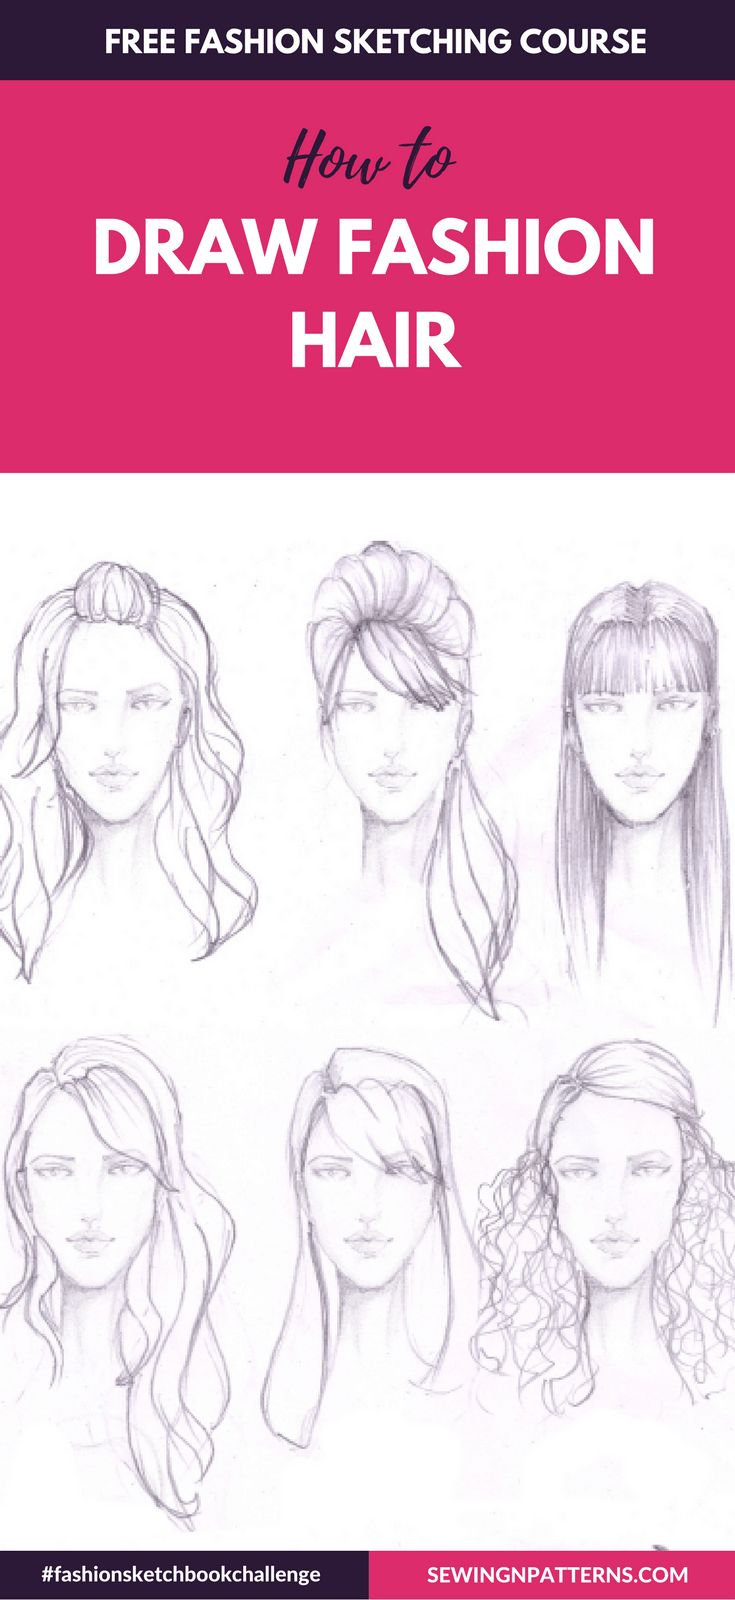 Fashion sketch like a pro with #fashionsketchbookchallenge 30 days FREE fahion design course How to Draw Fashion Sketches step by step